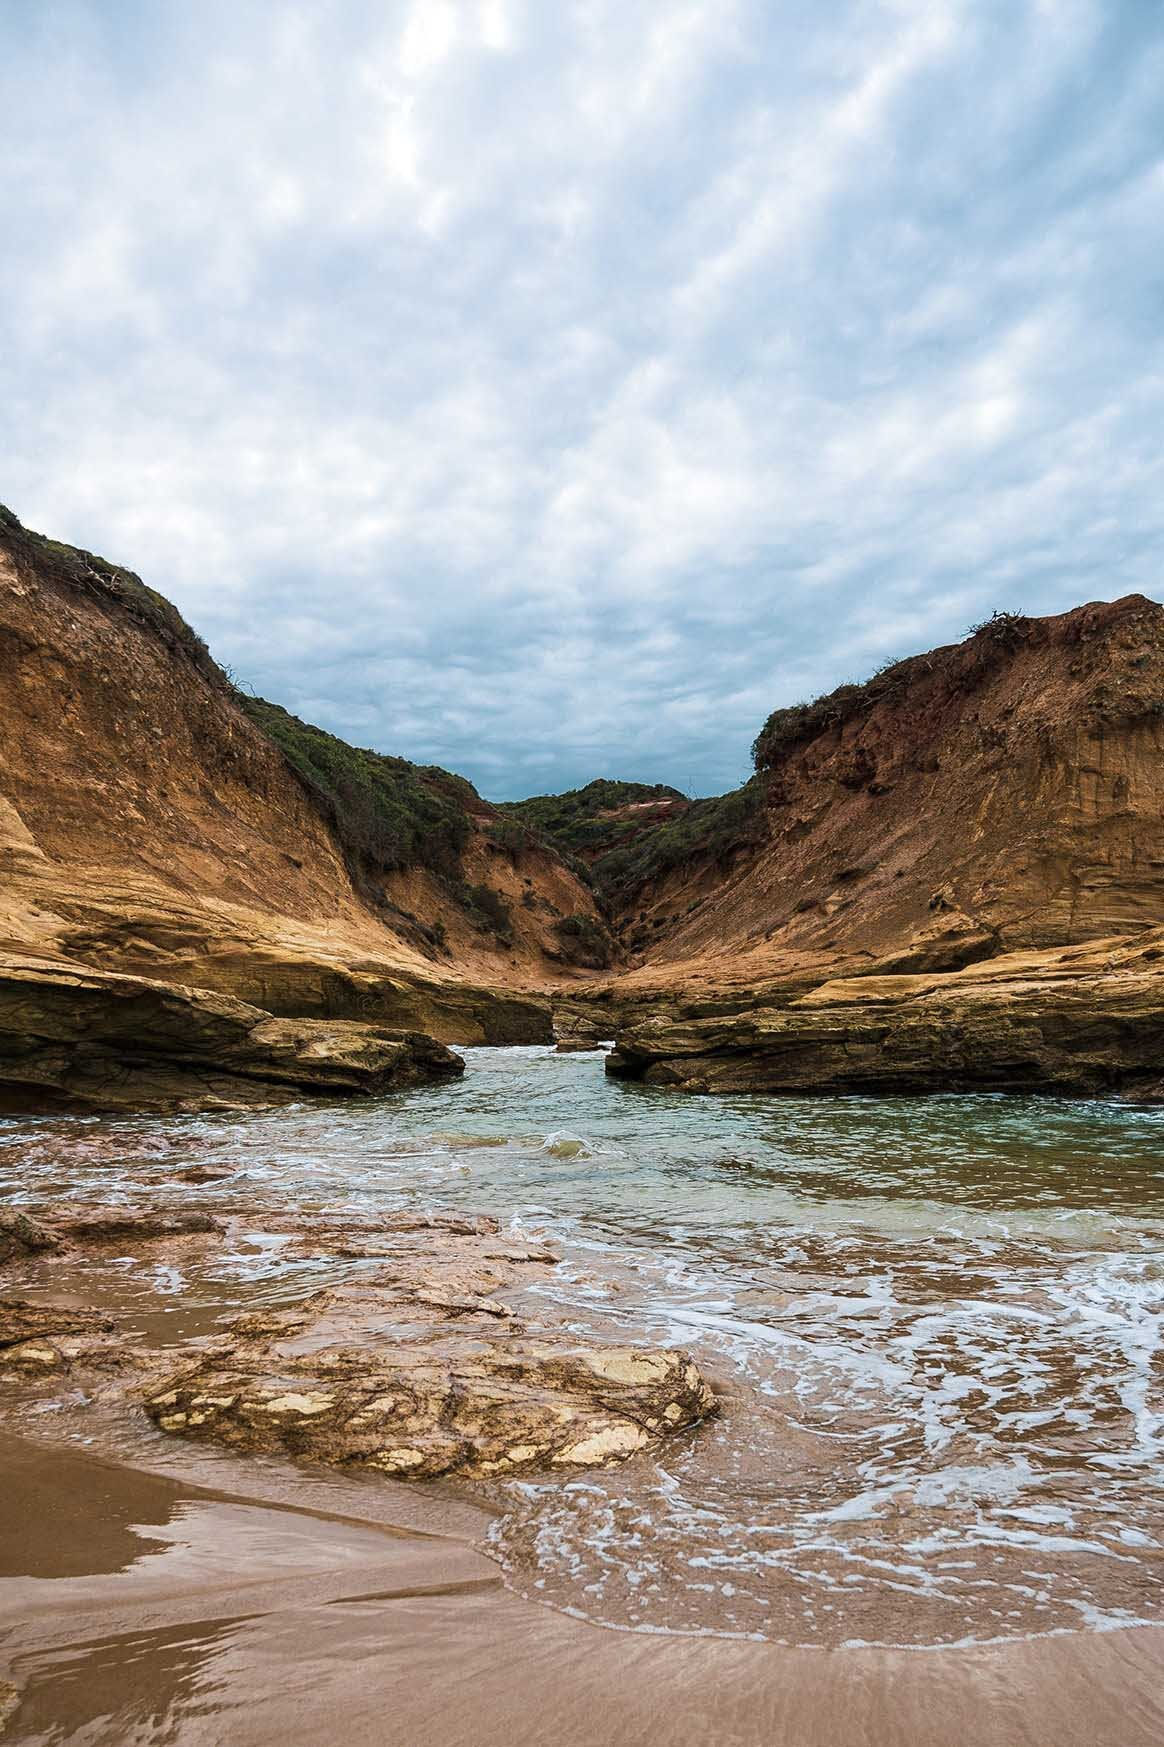 'Orenda' from the Aireys Inlet series, Victoria, Australia by Melissa Butters Photography